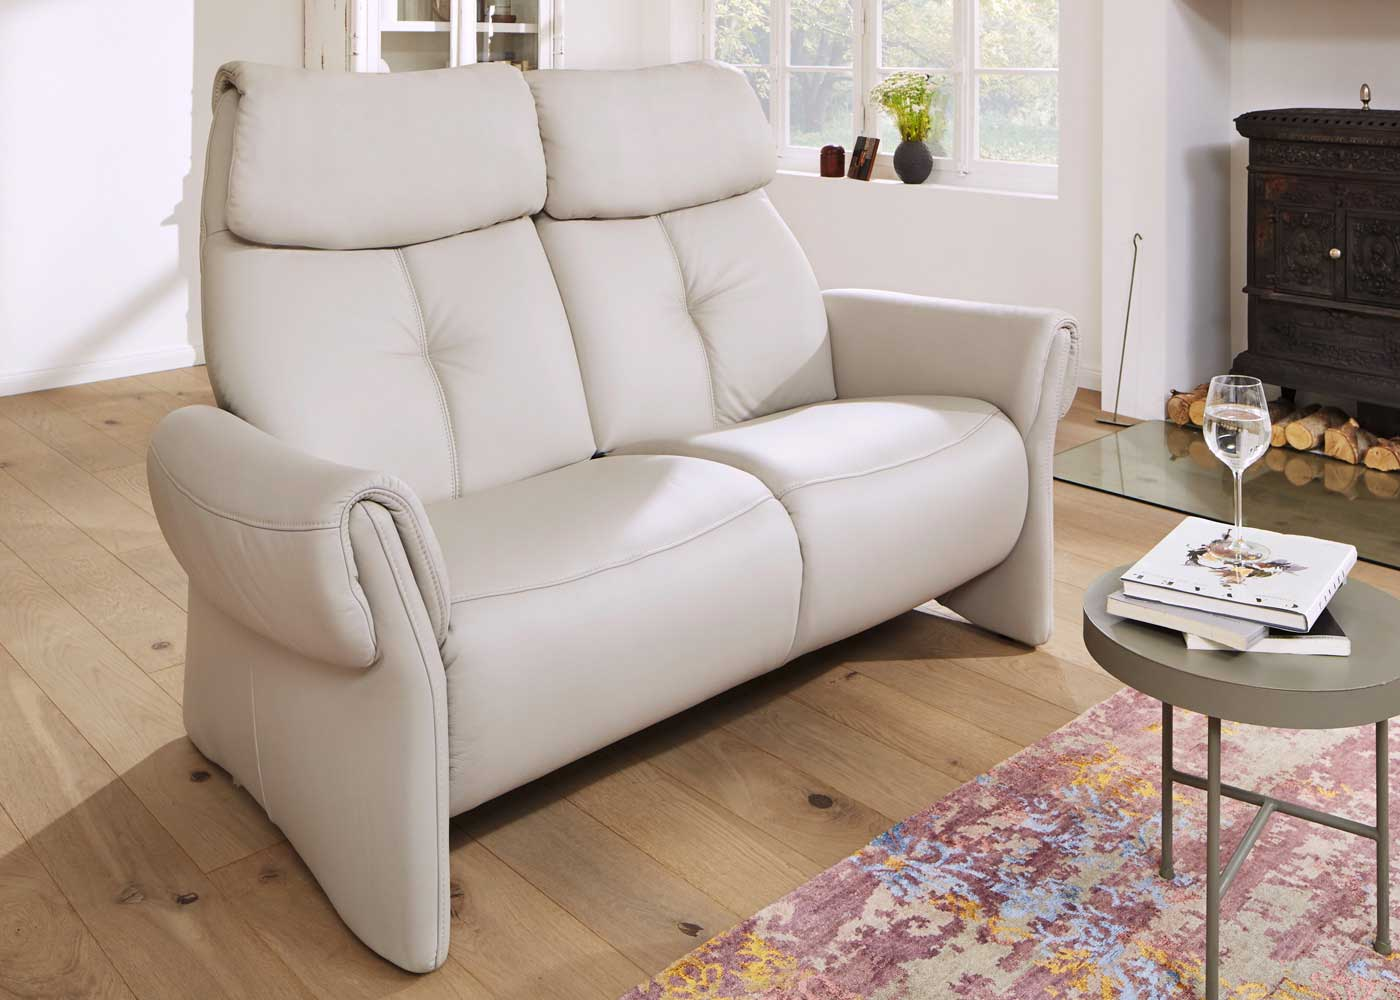 leather corner sofa with electric recliner rustic uk himolla cologne - midfurn furniture superstore